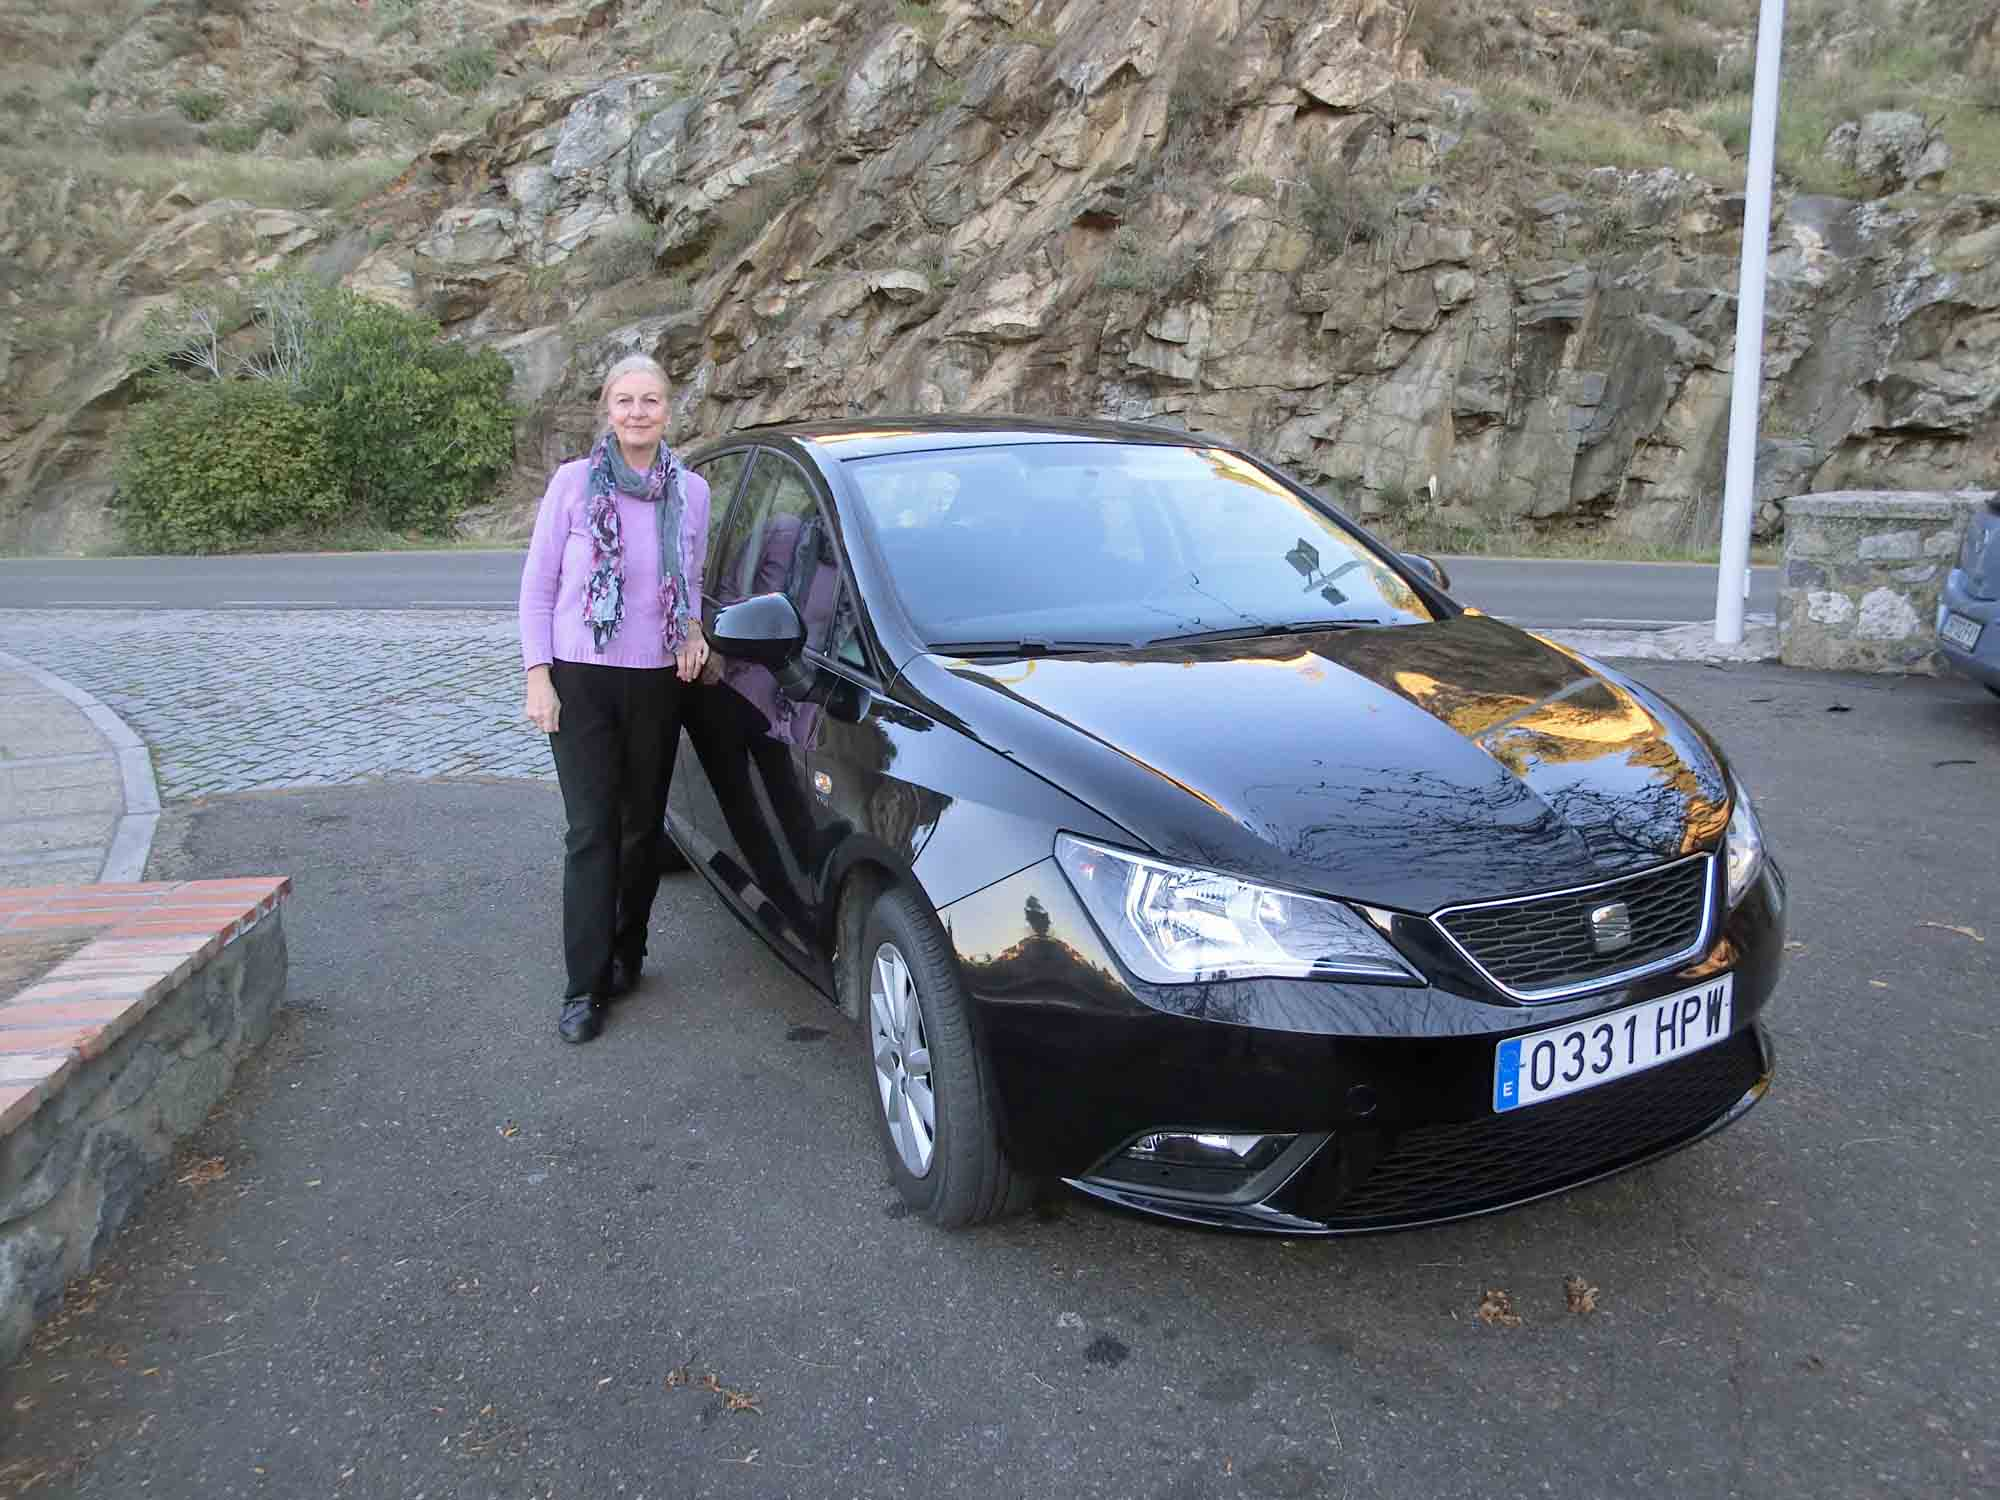 Our Seat Ibiza Hire Car in Andalusia